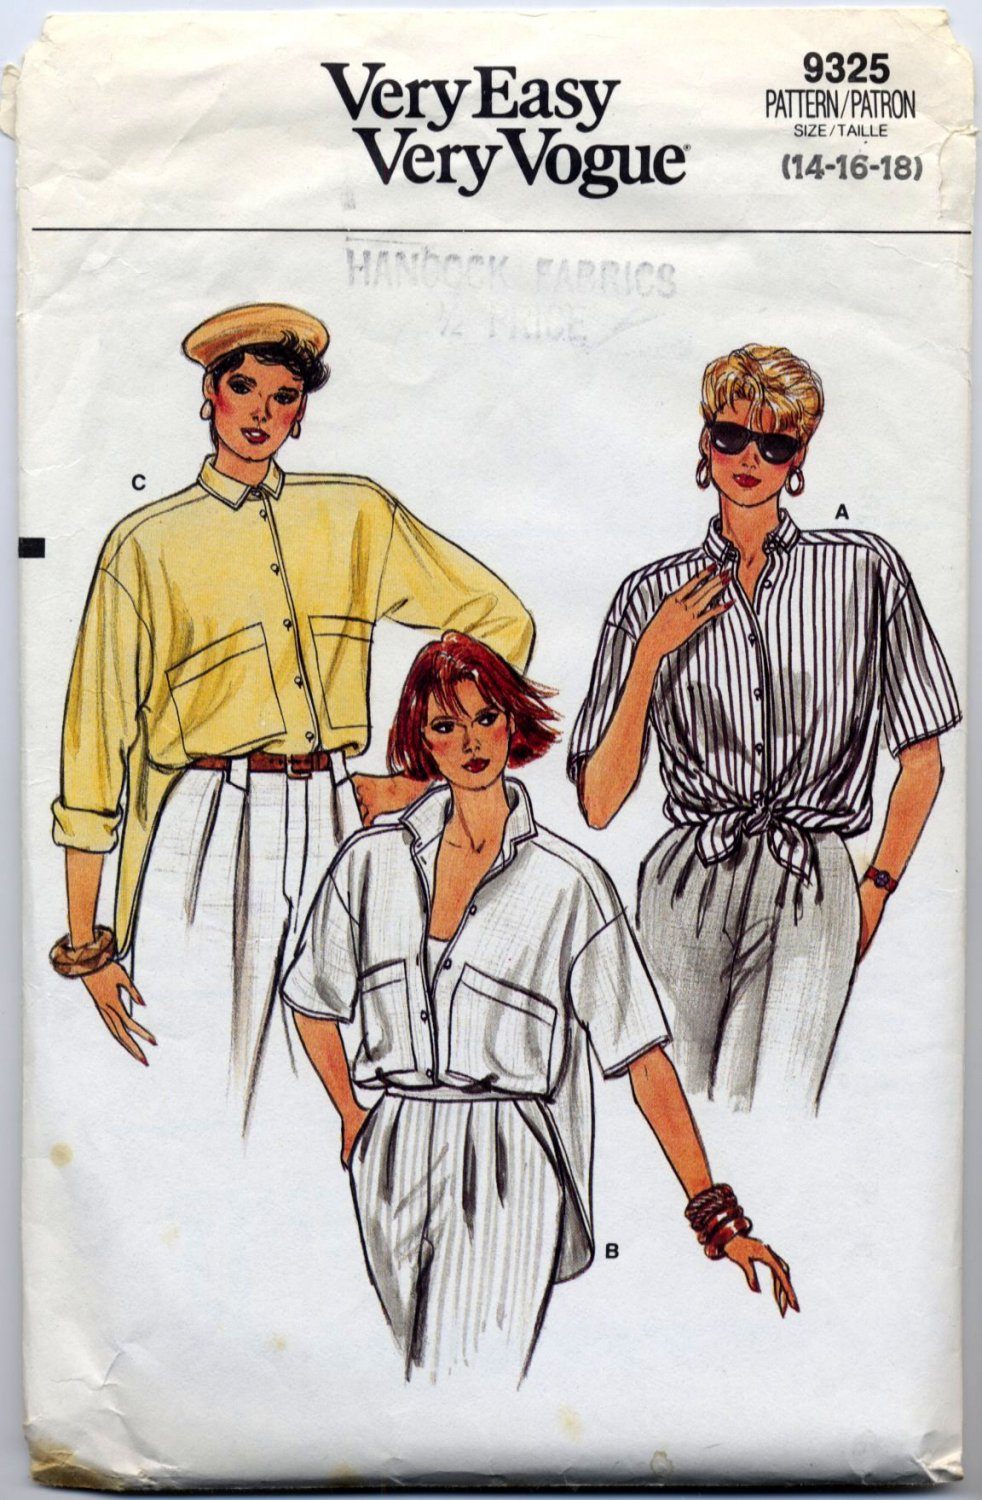 Vogue 9325 Shirt - Very Easy CUT Sewing Pattern - Misses' 14 16 18 Wardrobe Builder 80s Chic